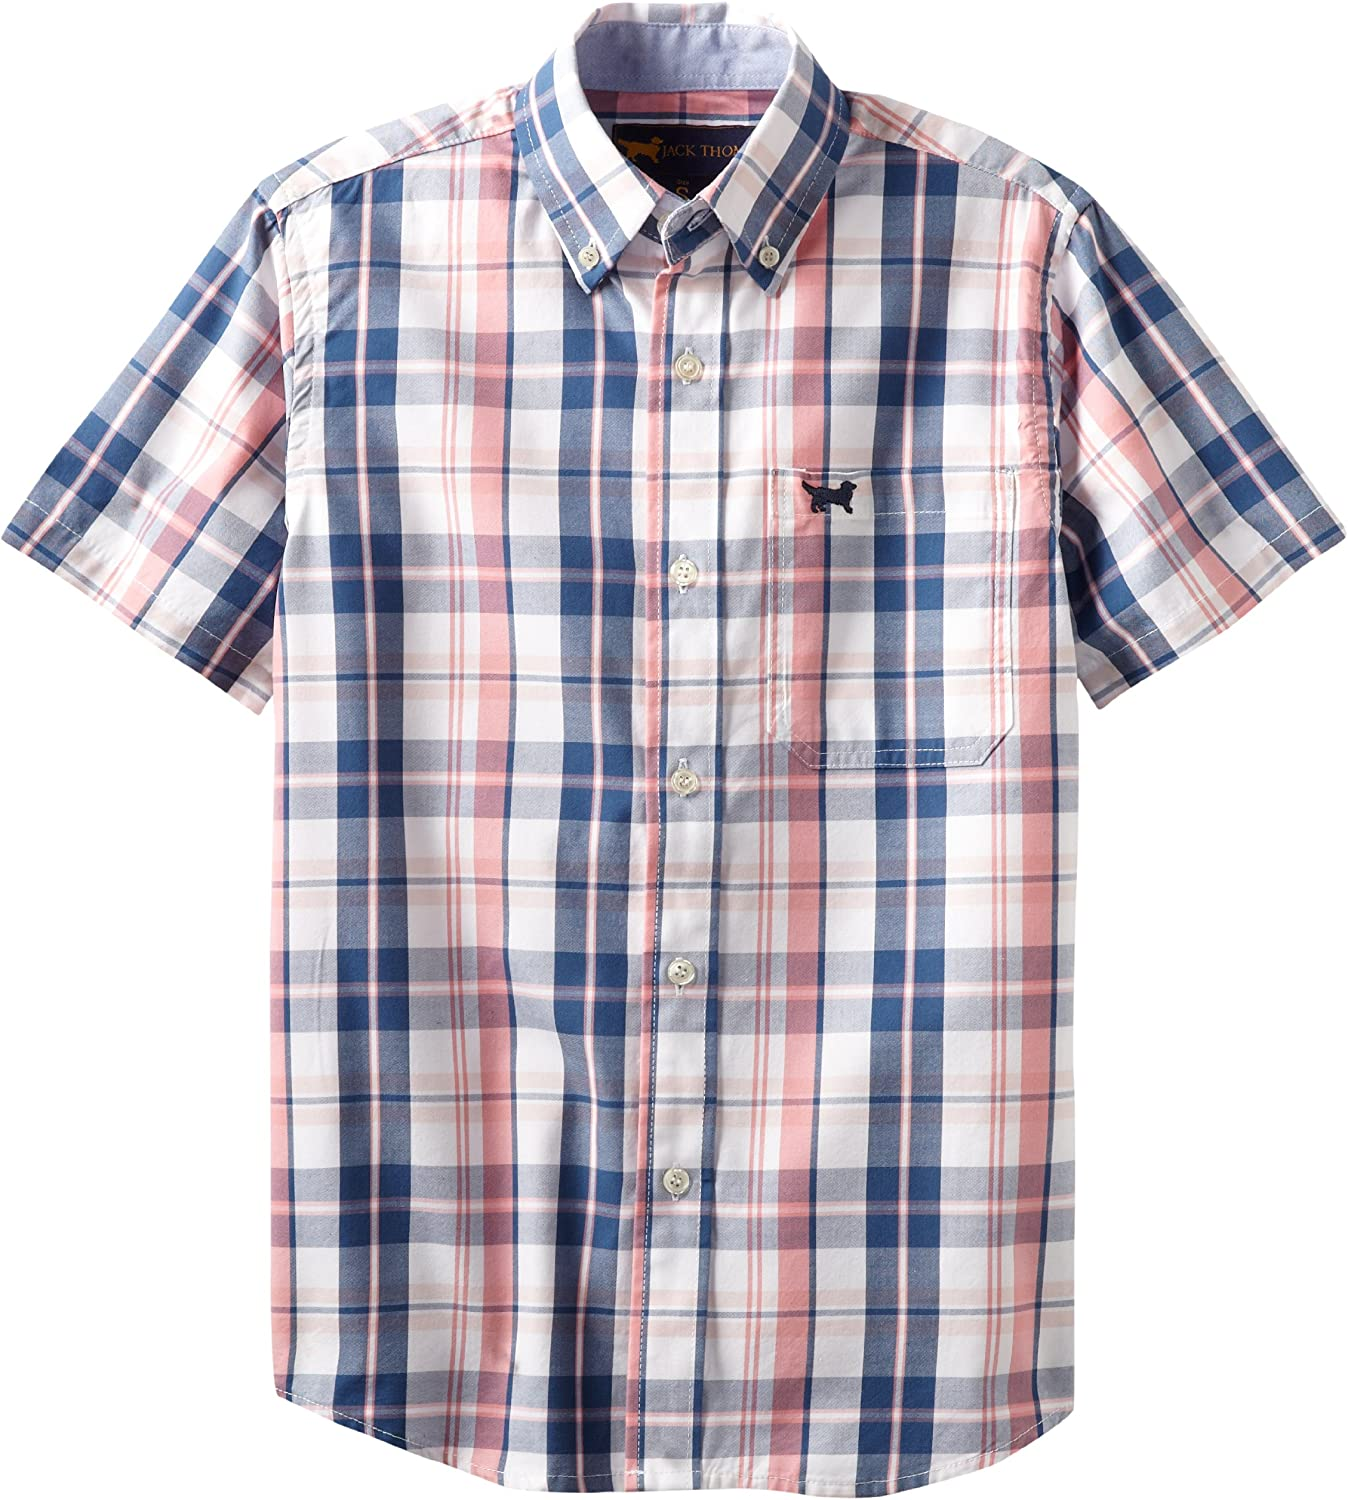 Wes and Willy Big Boys' Short Sleeve Pink Plaid Dress Shirt